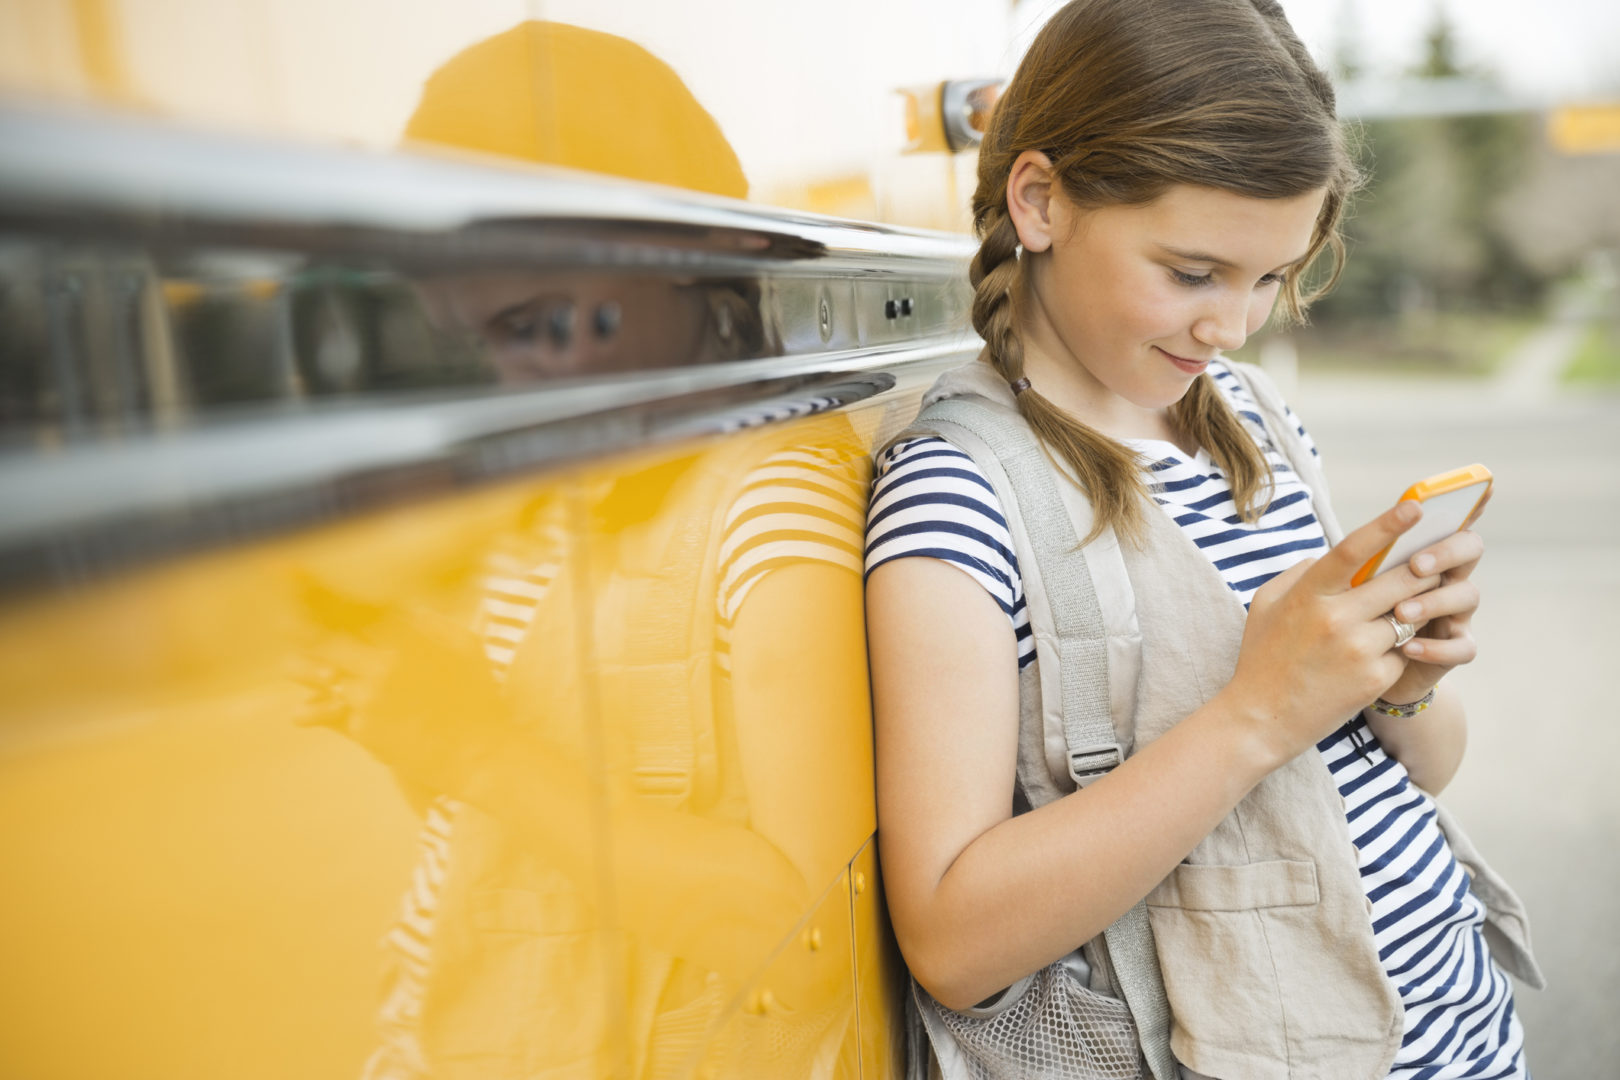 Cell phones in school: Let's talk about the pros and cons